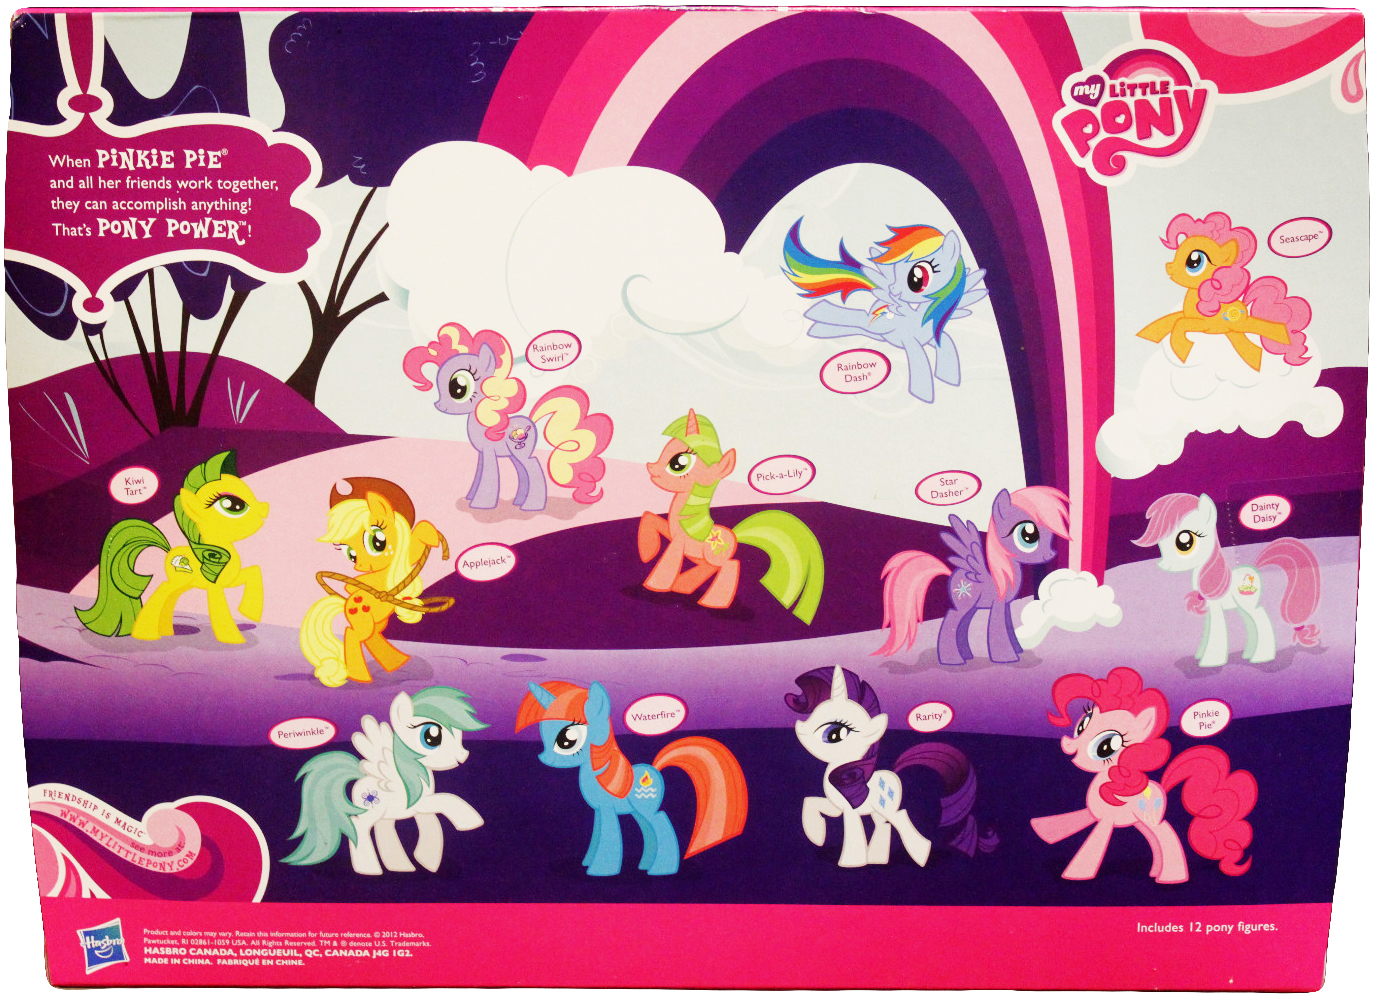 G4 My Little Pony Reference Pick A Lily Friendship Is Magic